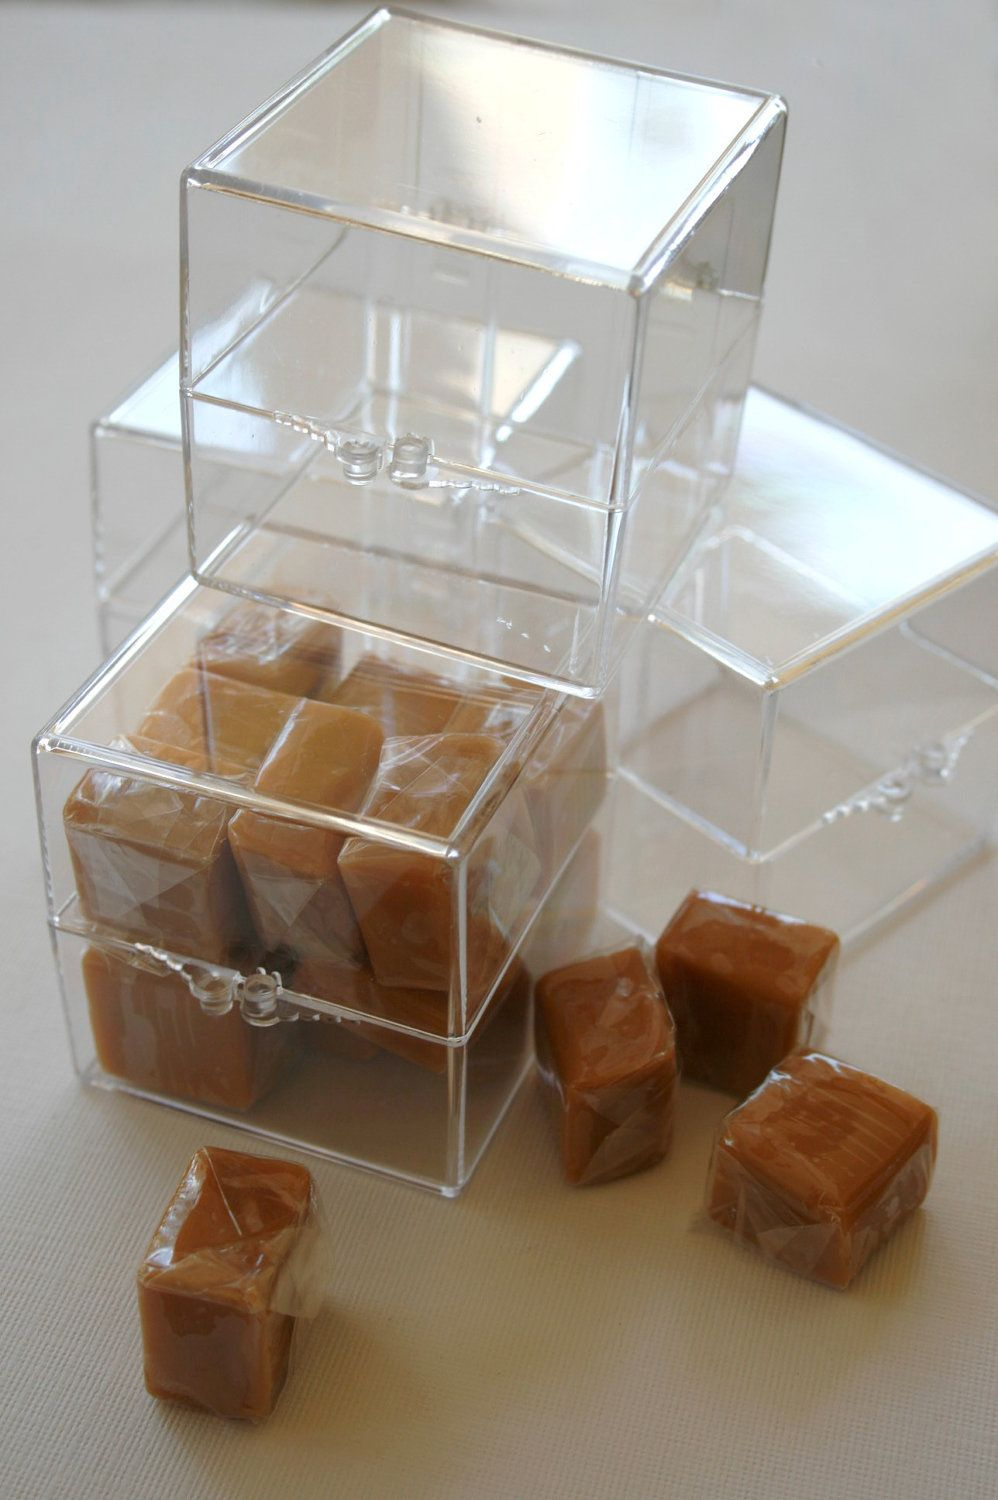 2 Inch Square Clear Acrylic Boxes Favors Or Parties Or Packaging